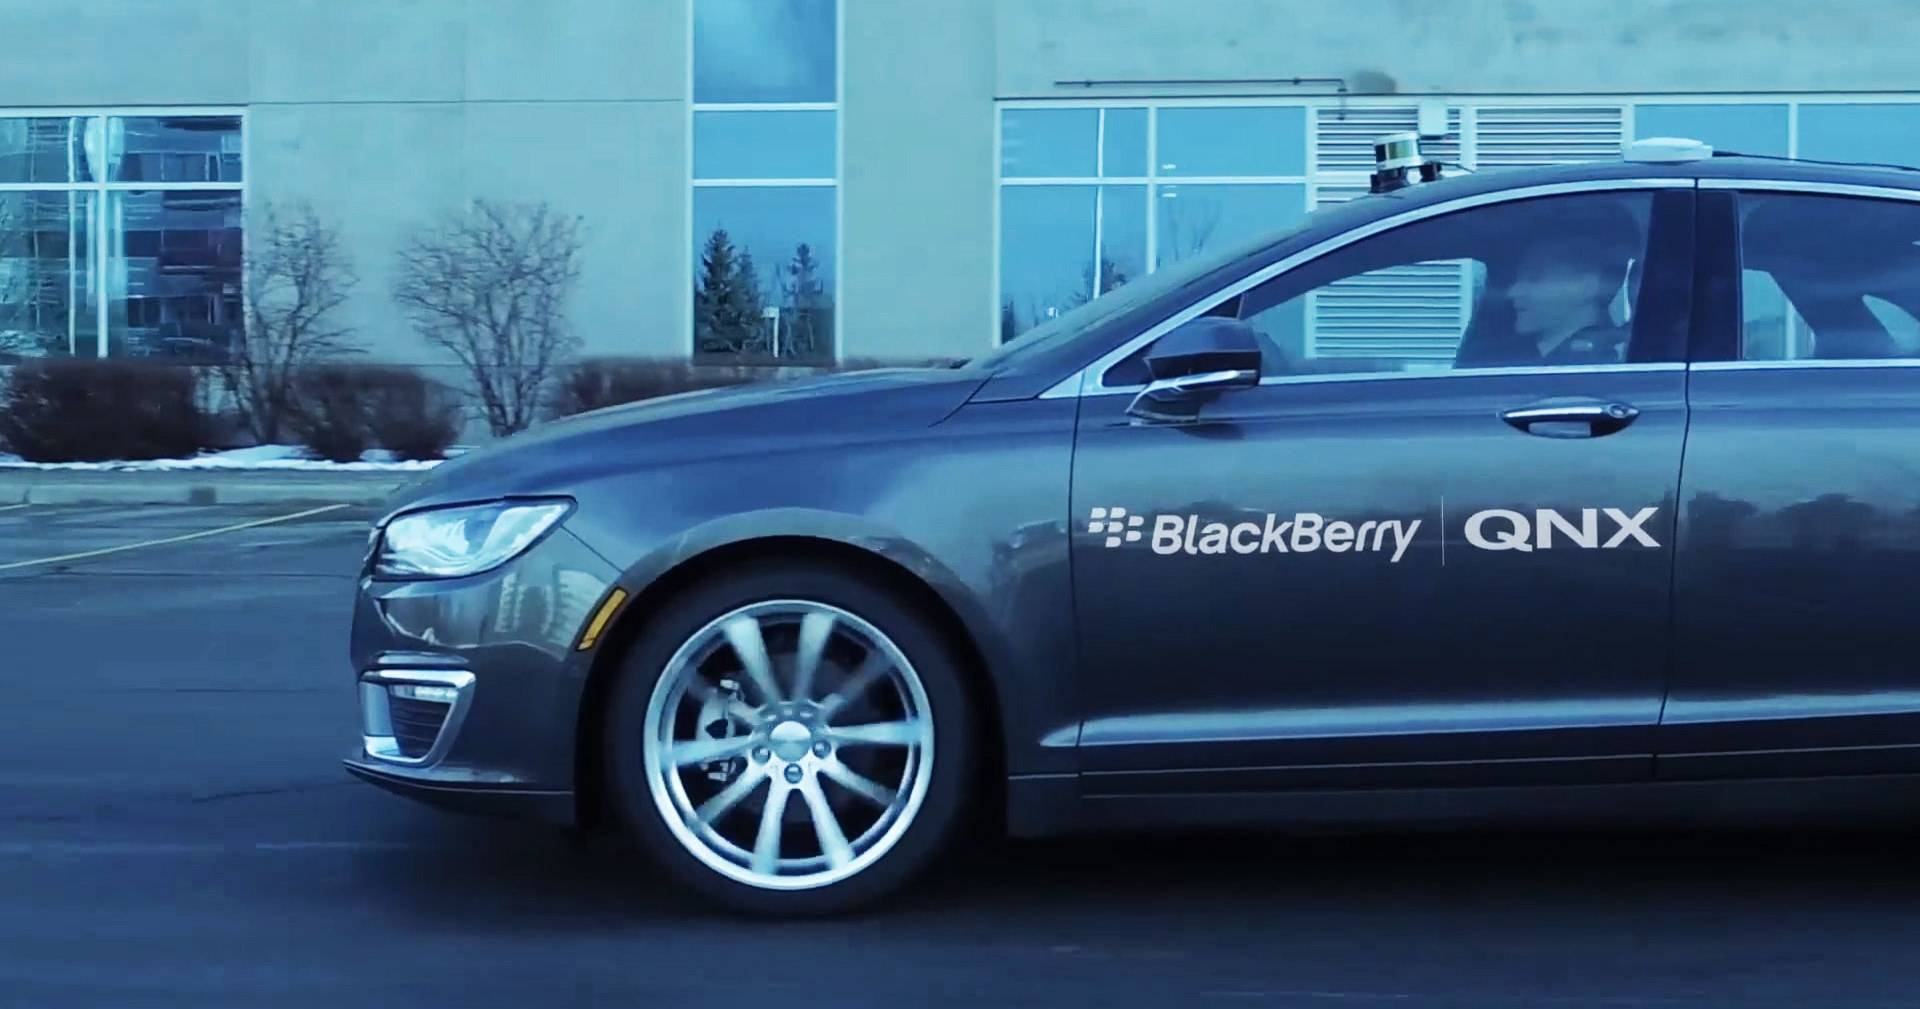 Blackberry overweight smart car business: push network security products Jarvis, seven minutes to verify security code | titanium alerts